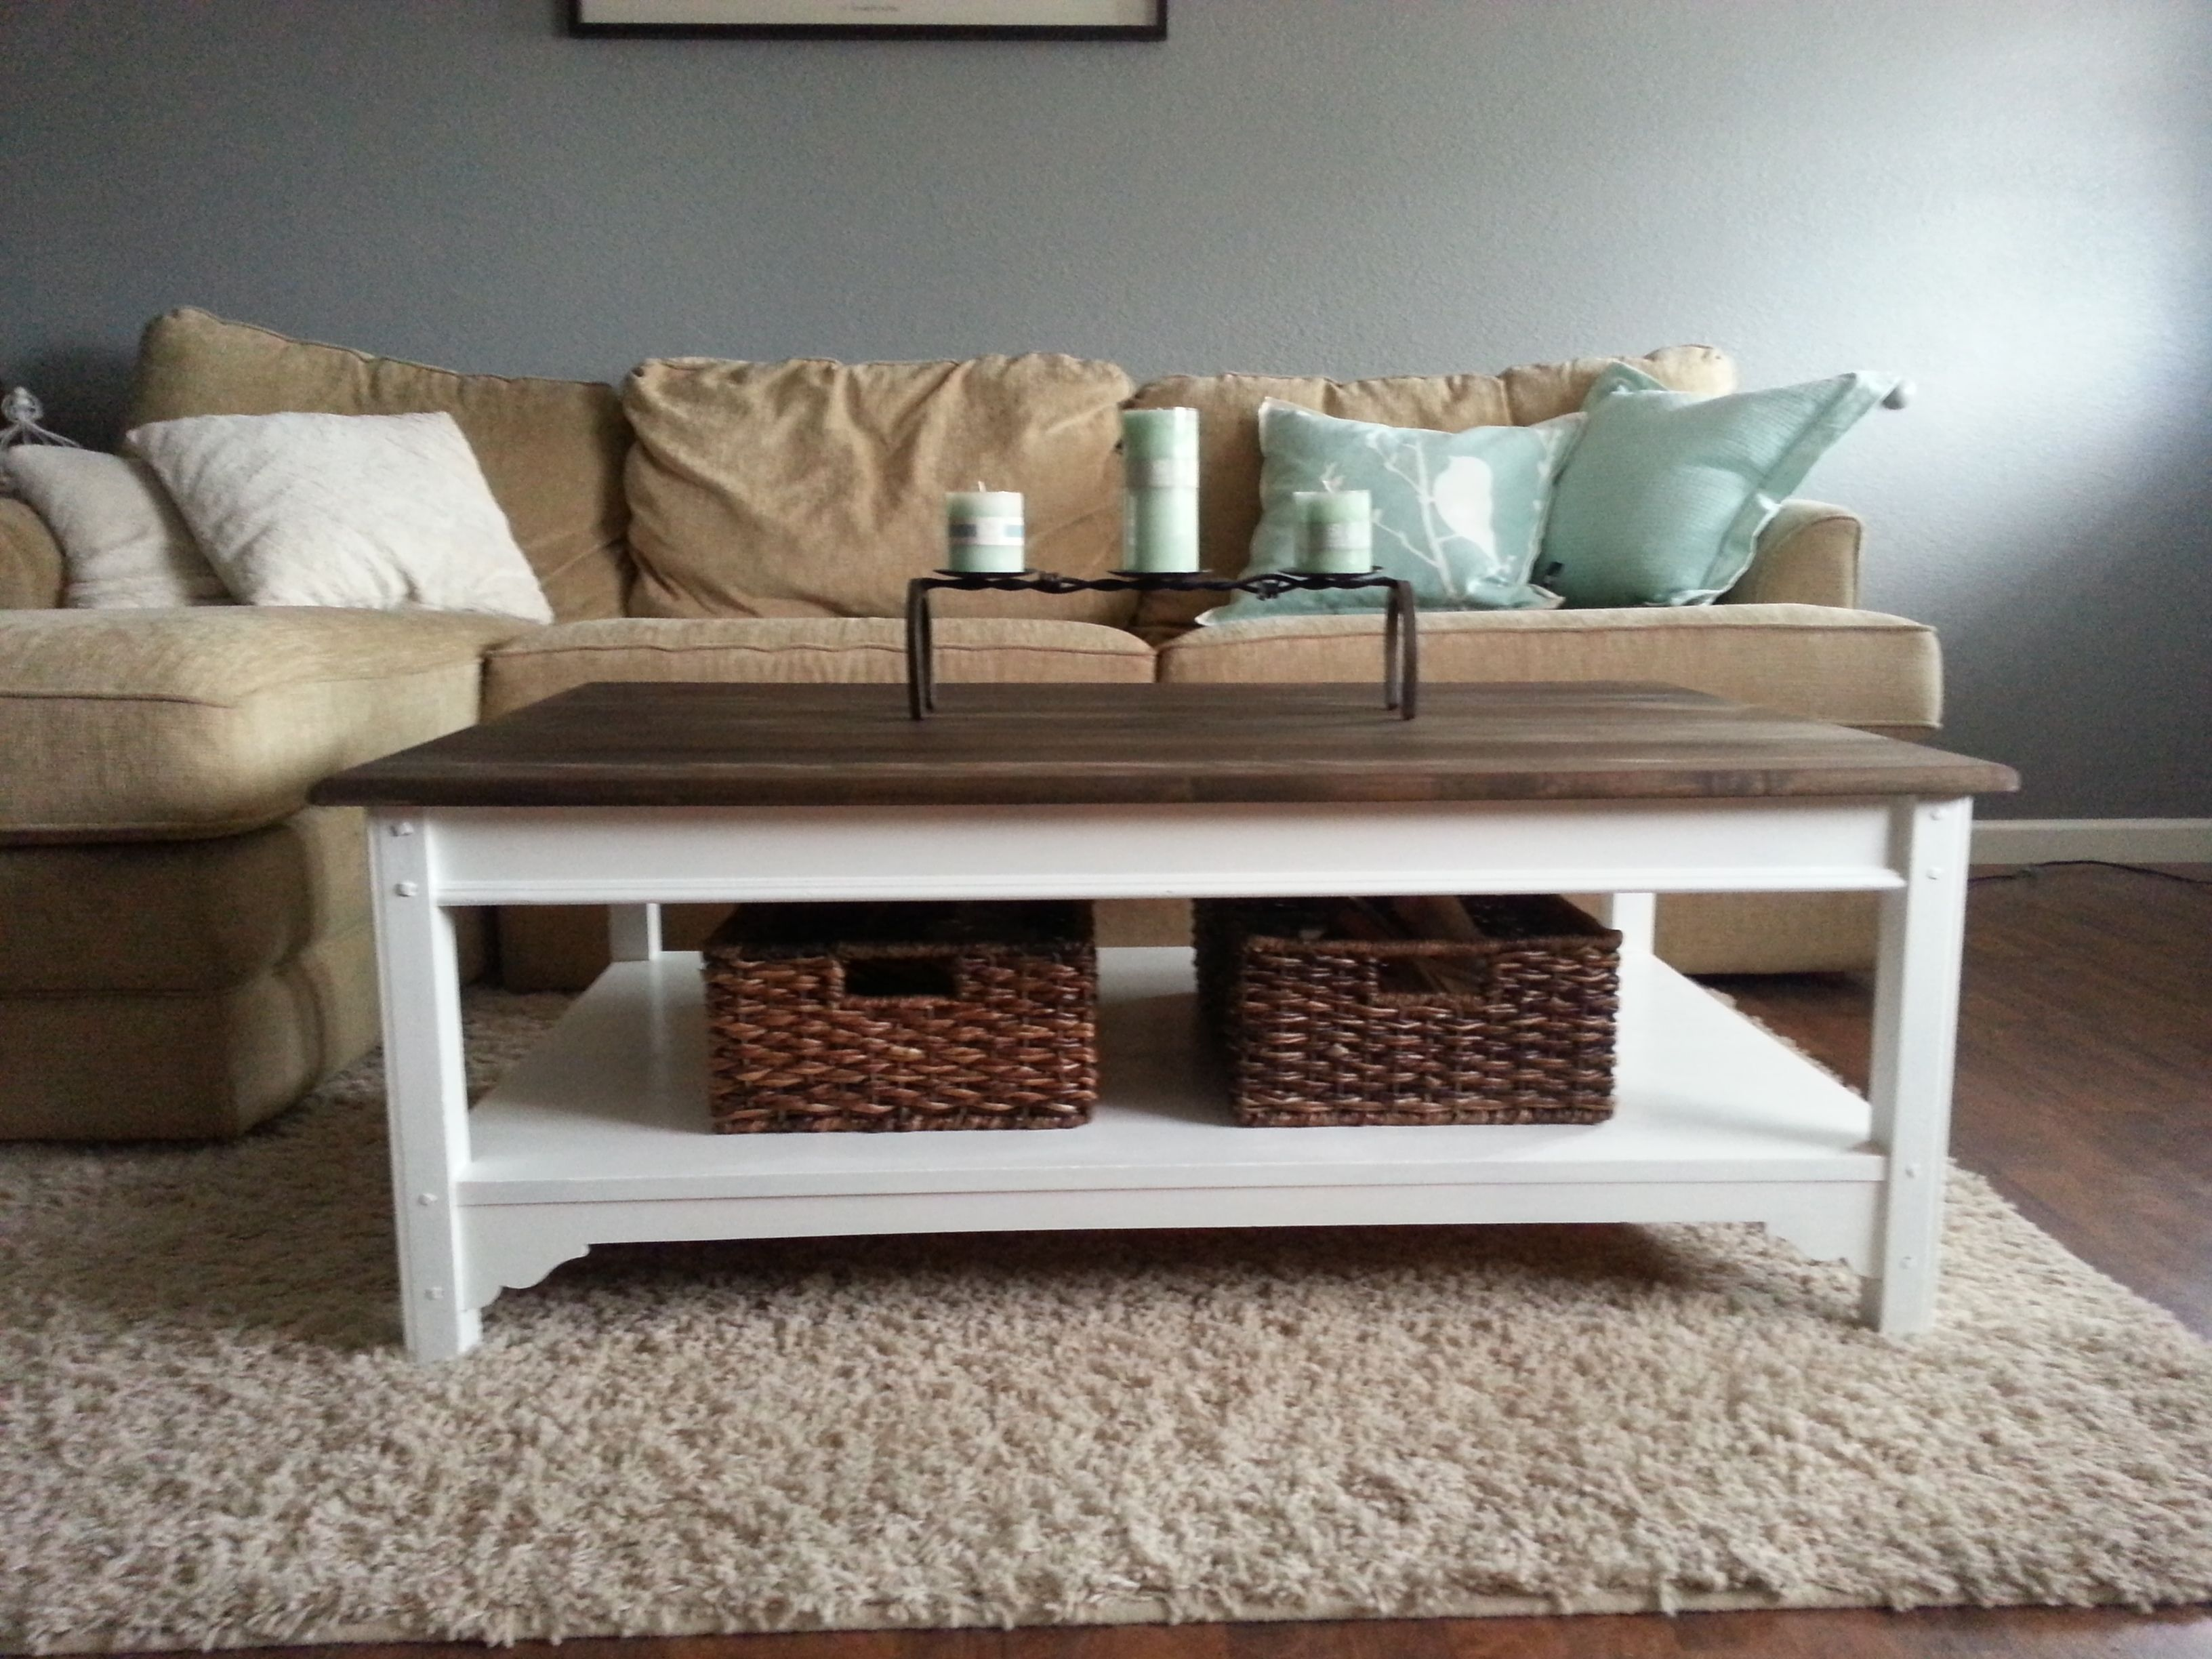 LOVE this coffee table Love the baskets underneath also Redone by